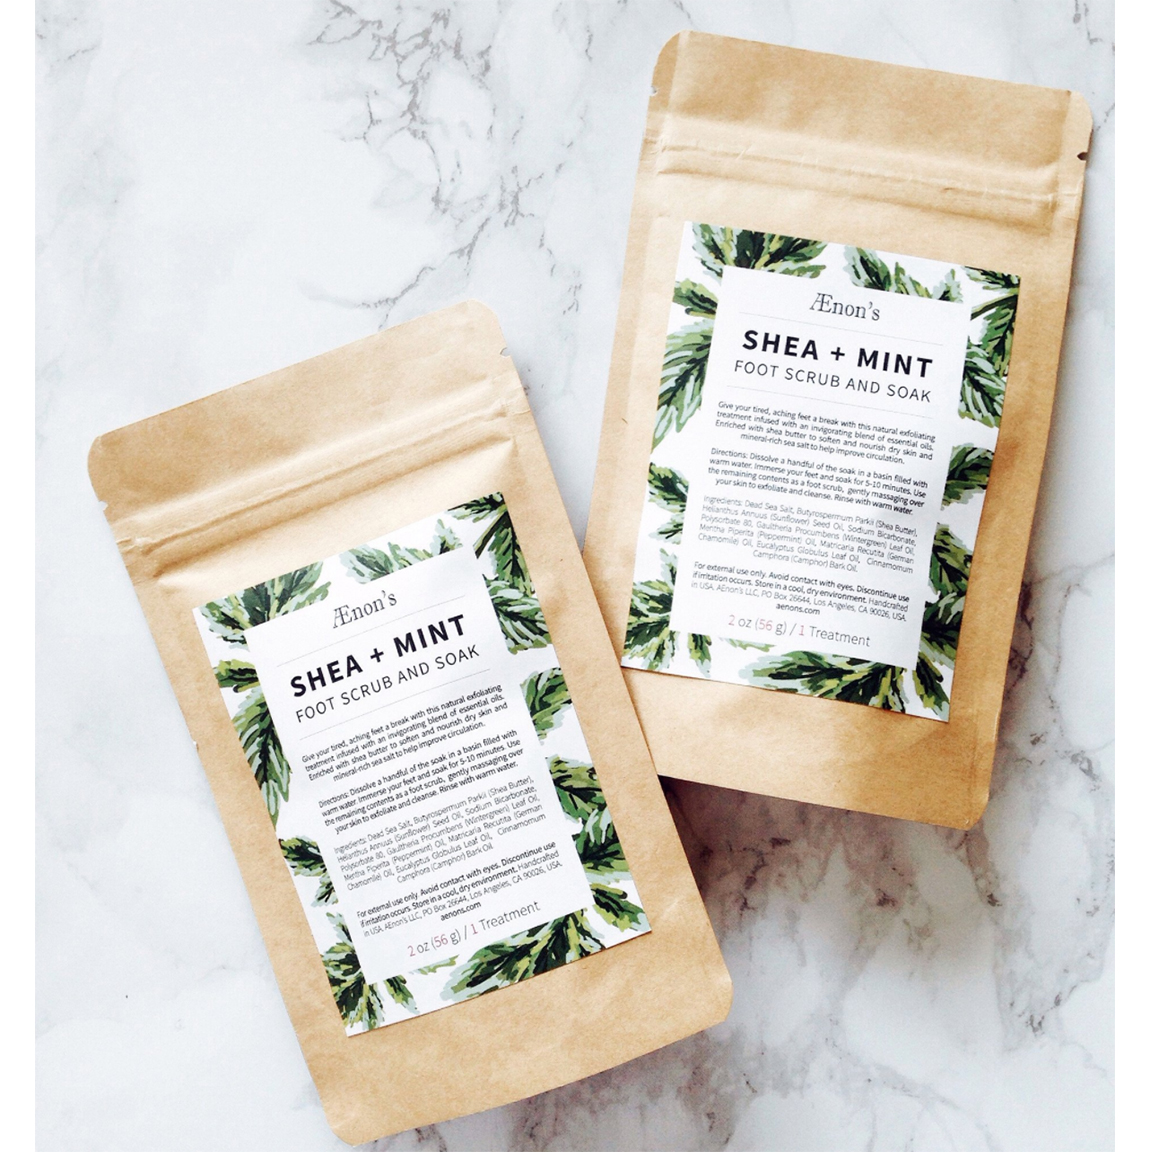 Copy of Shea + Mint Foot Scrub